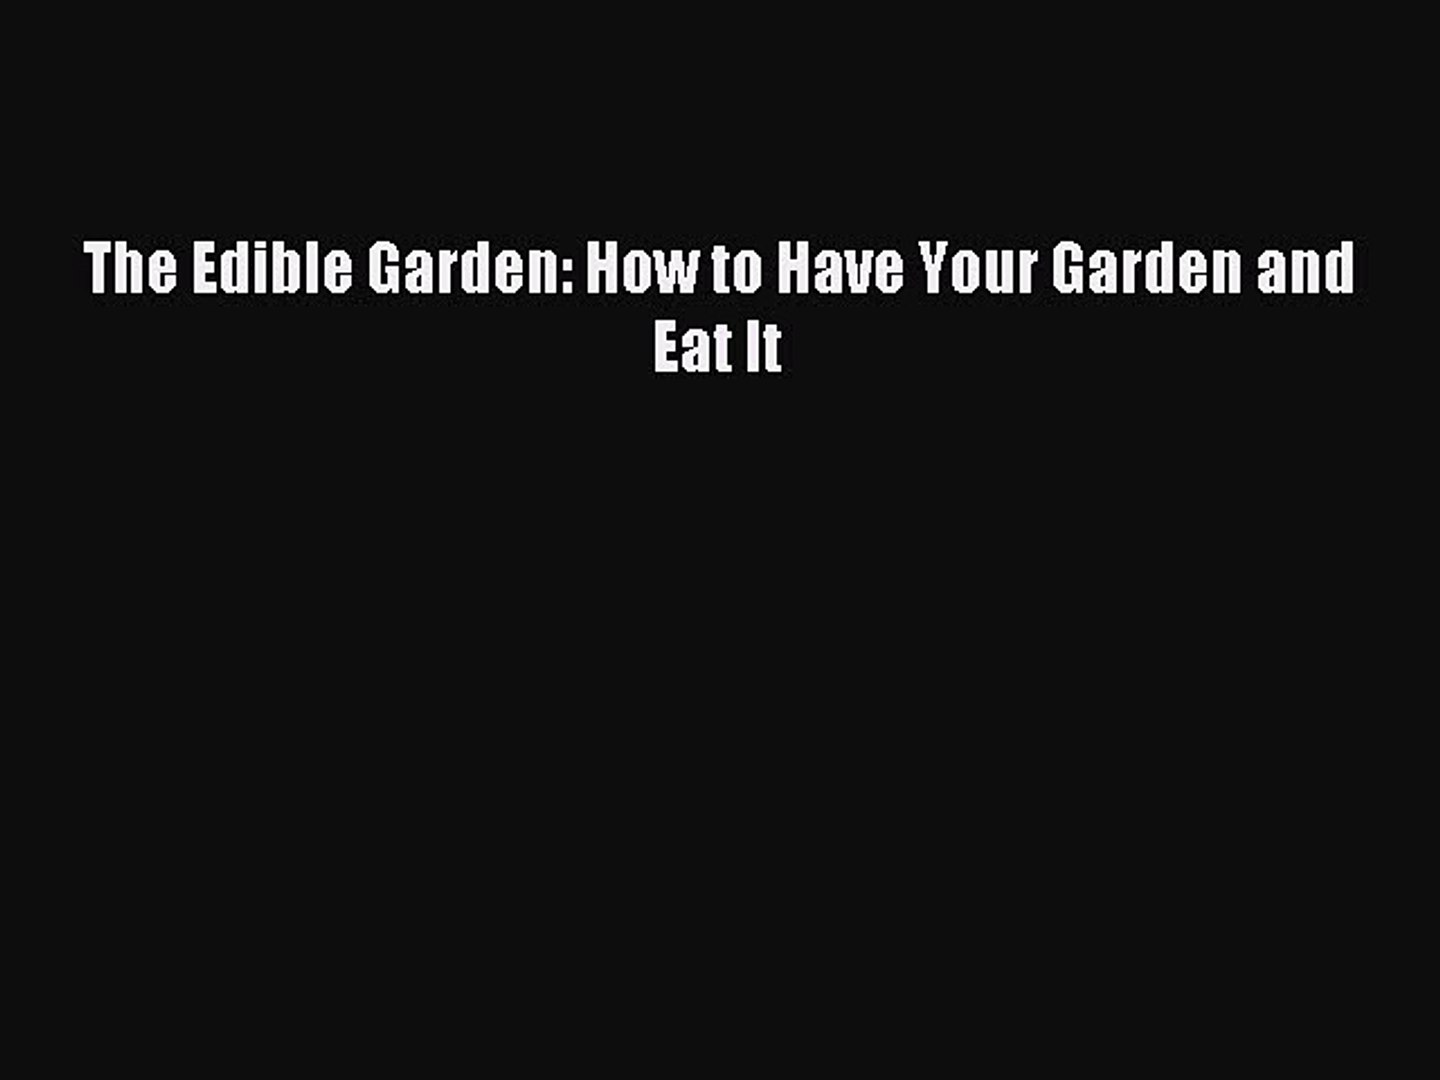 Download The Edible Garden: How to Have Your Garden and Eat It Ebook Free